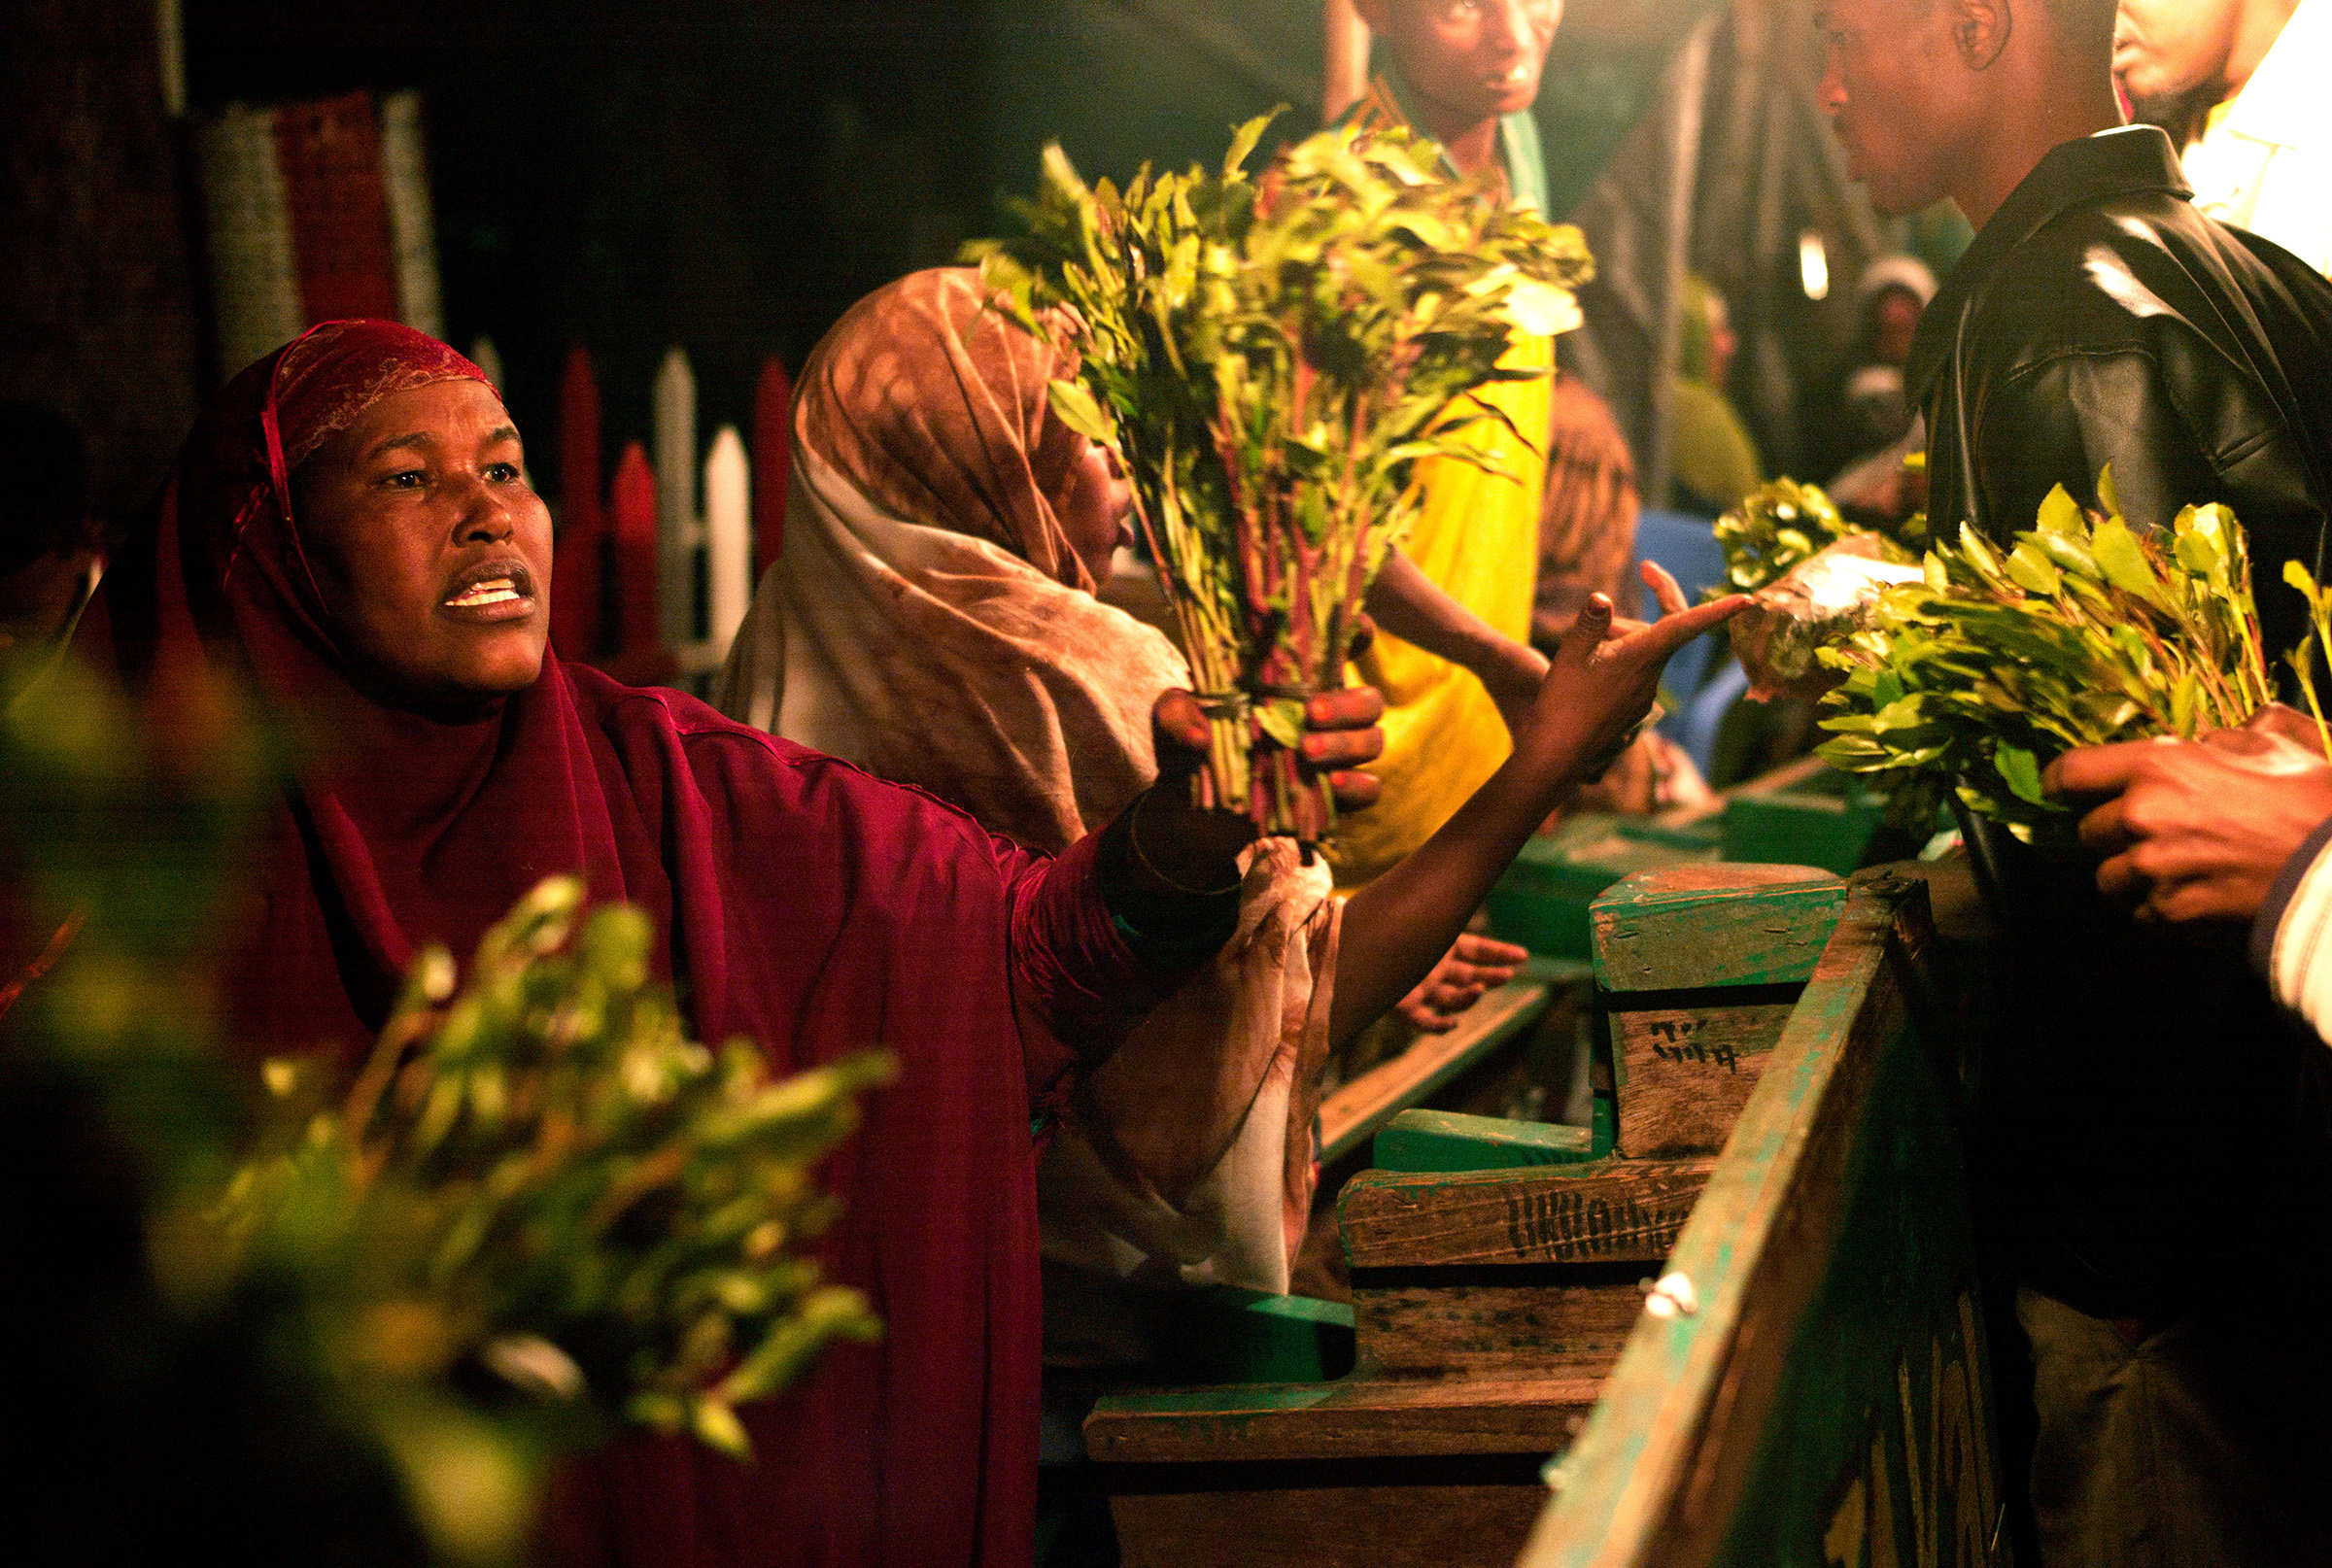 A woman holds a bunch of khat out for sale on her stall in a khat nightmarket in Hargeisa, Somaliland in 2008. The khat is imported by truck from Harar in Ethiopia.